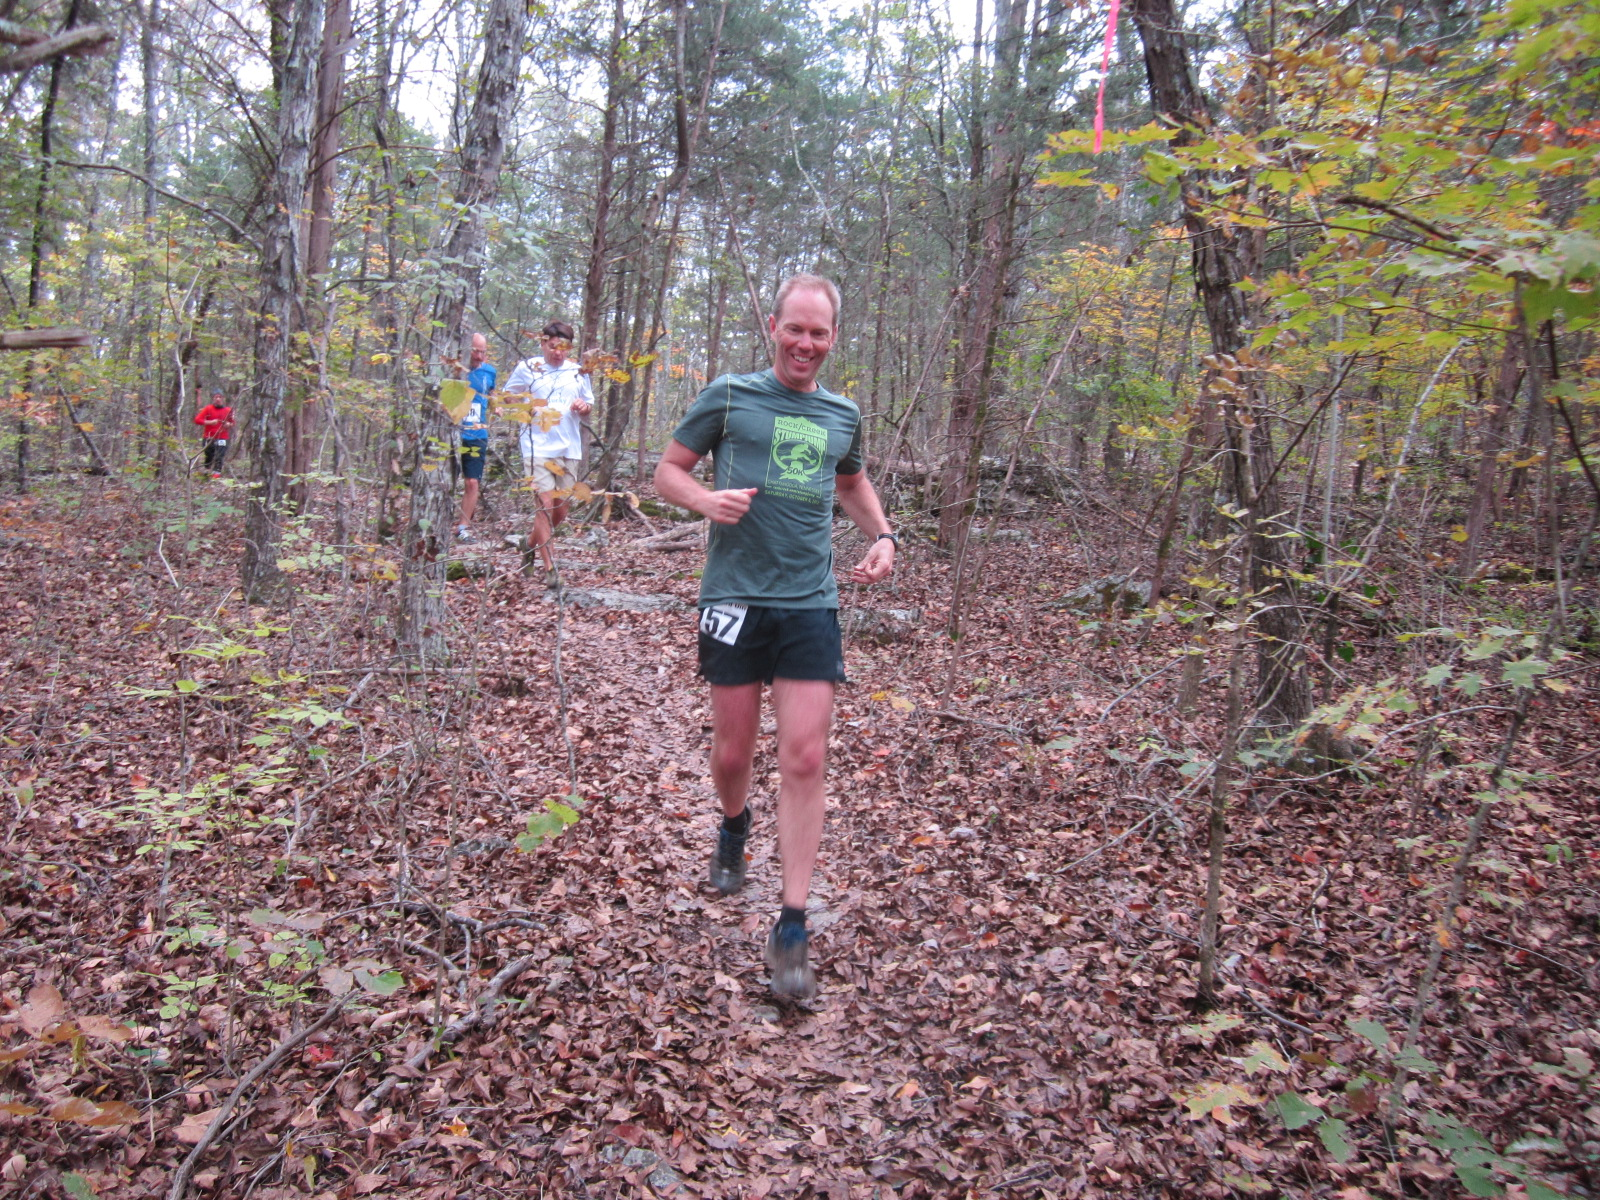 Big Backyard Ultra : Big Backyard Ultra  October 15, 2016